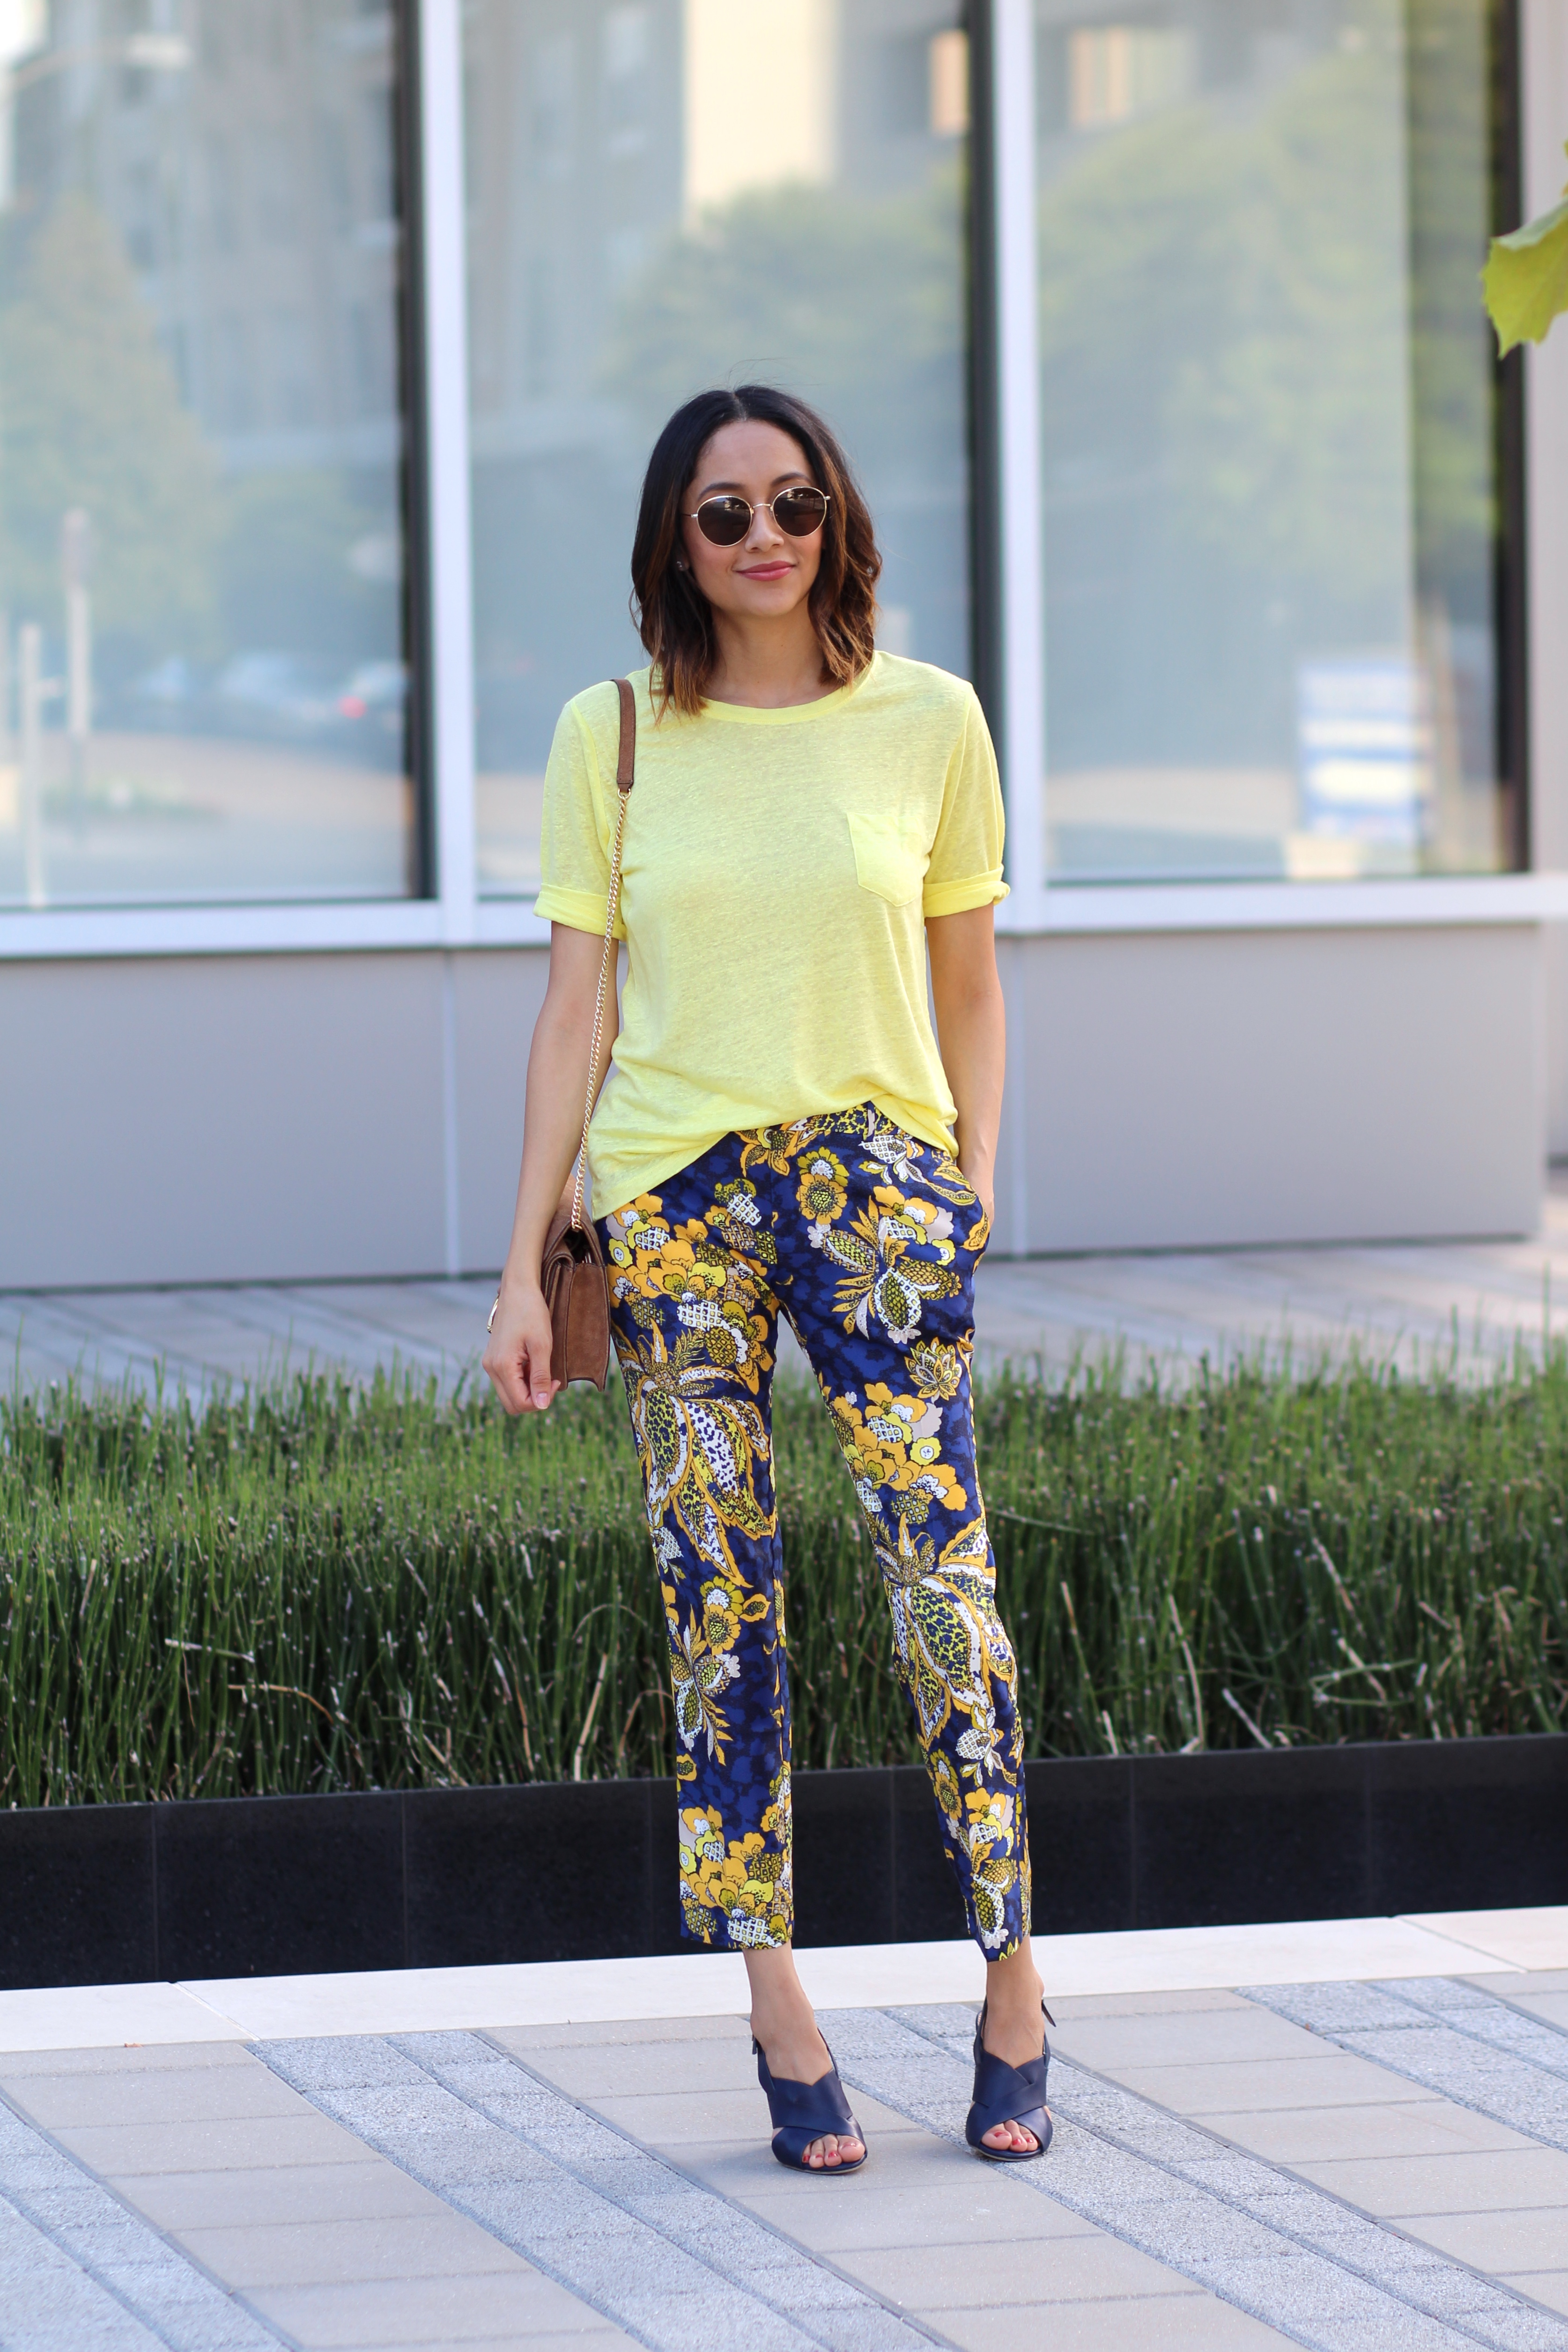 adding more color with printed pants and a bright colored tee